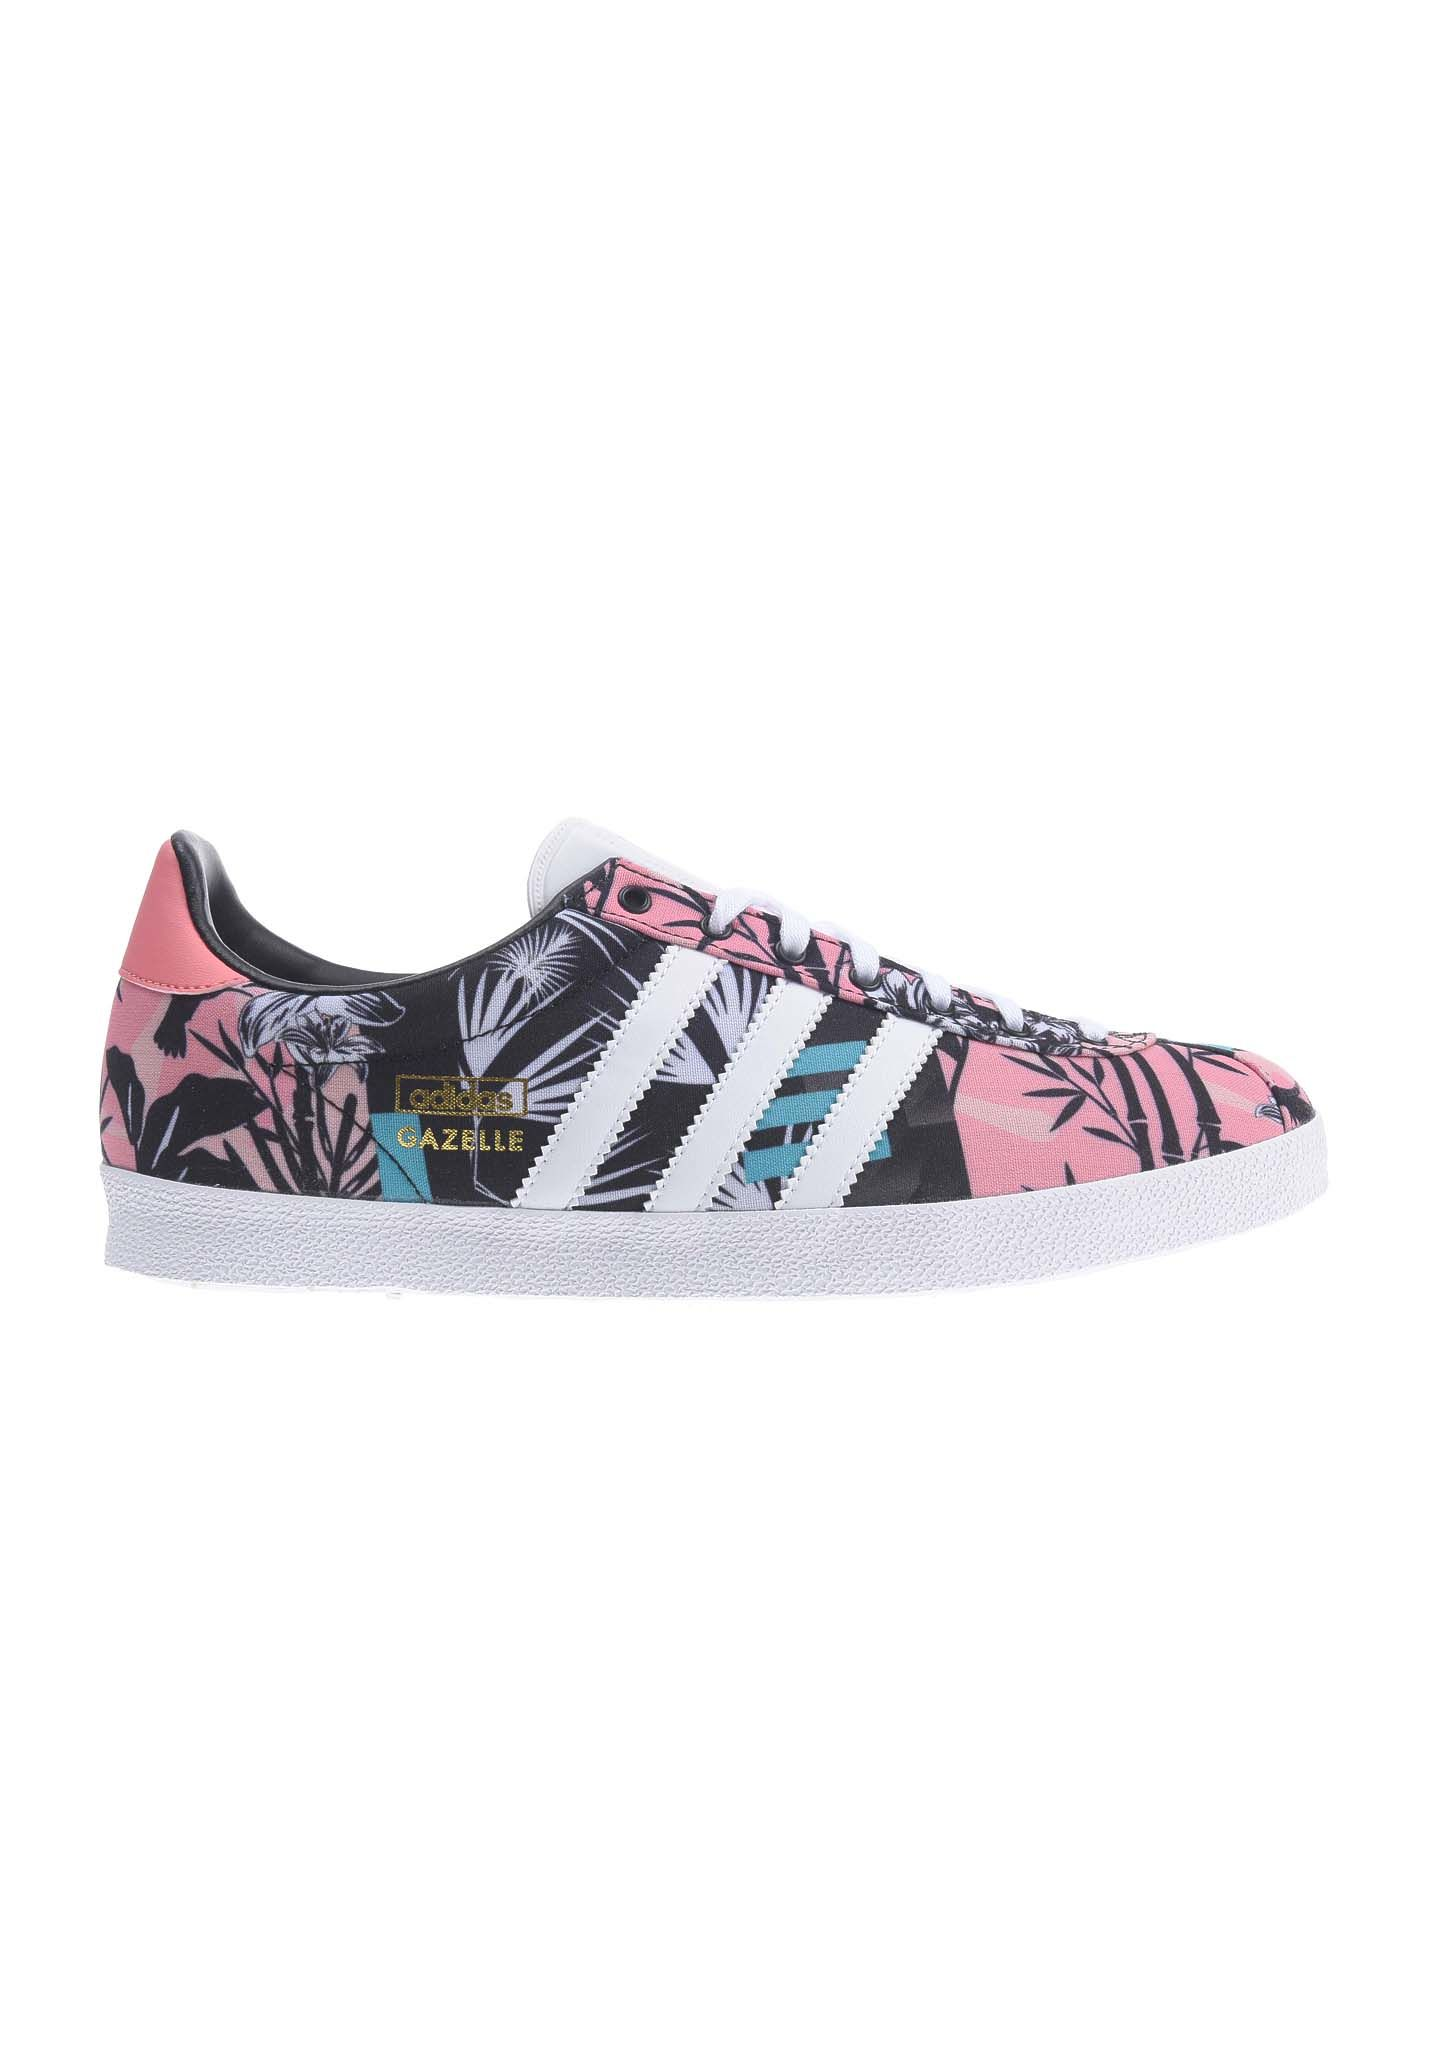 Adidas Women Planet Gazelle Originals Og Multicolor For Sneakers Sports ZXZTrwvq